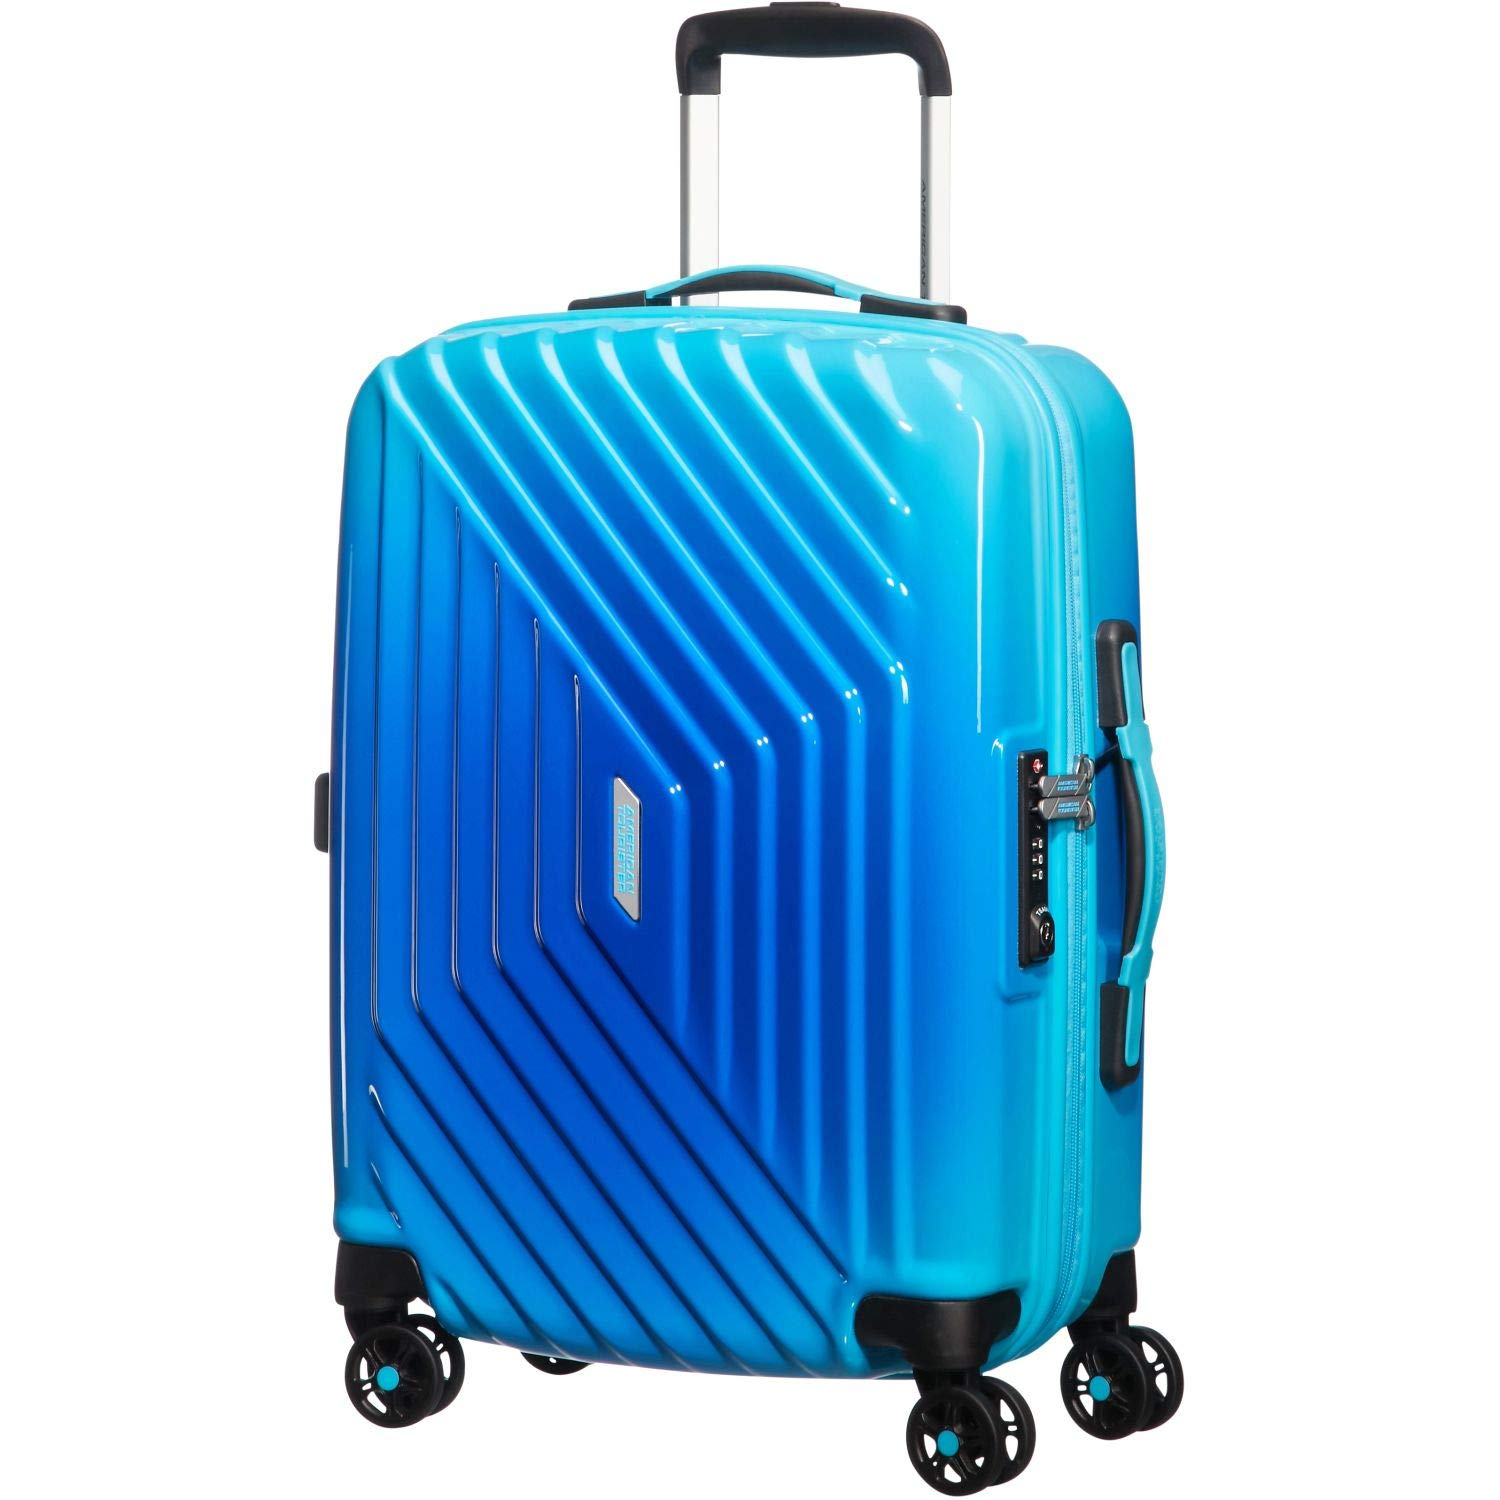 American Tourister Air Force 1 4 Roues 55/20 TSA Grad Bagage Cabine, 55 cm, 34 L, Gradient Blue